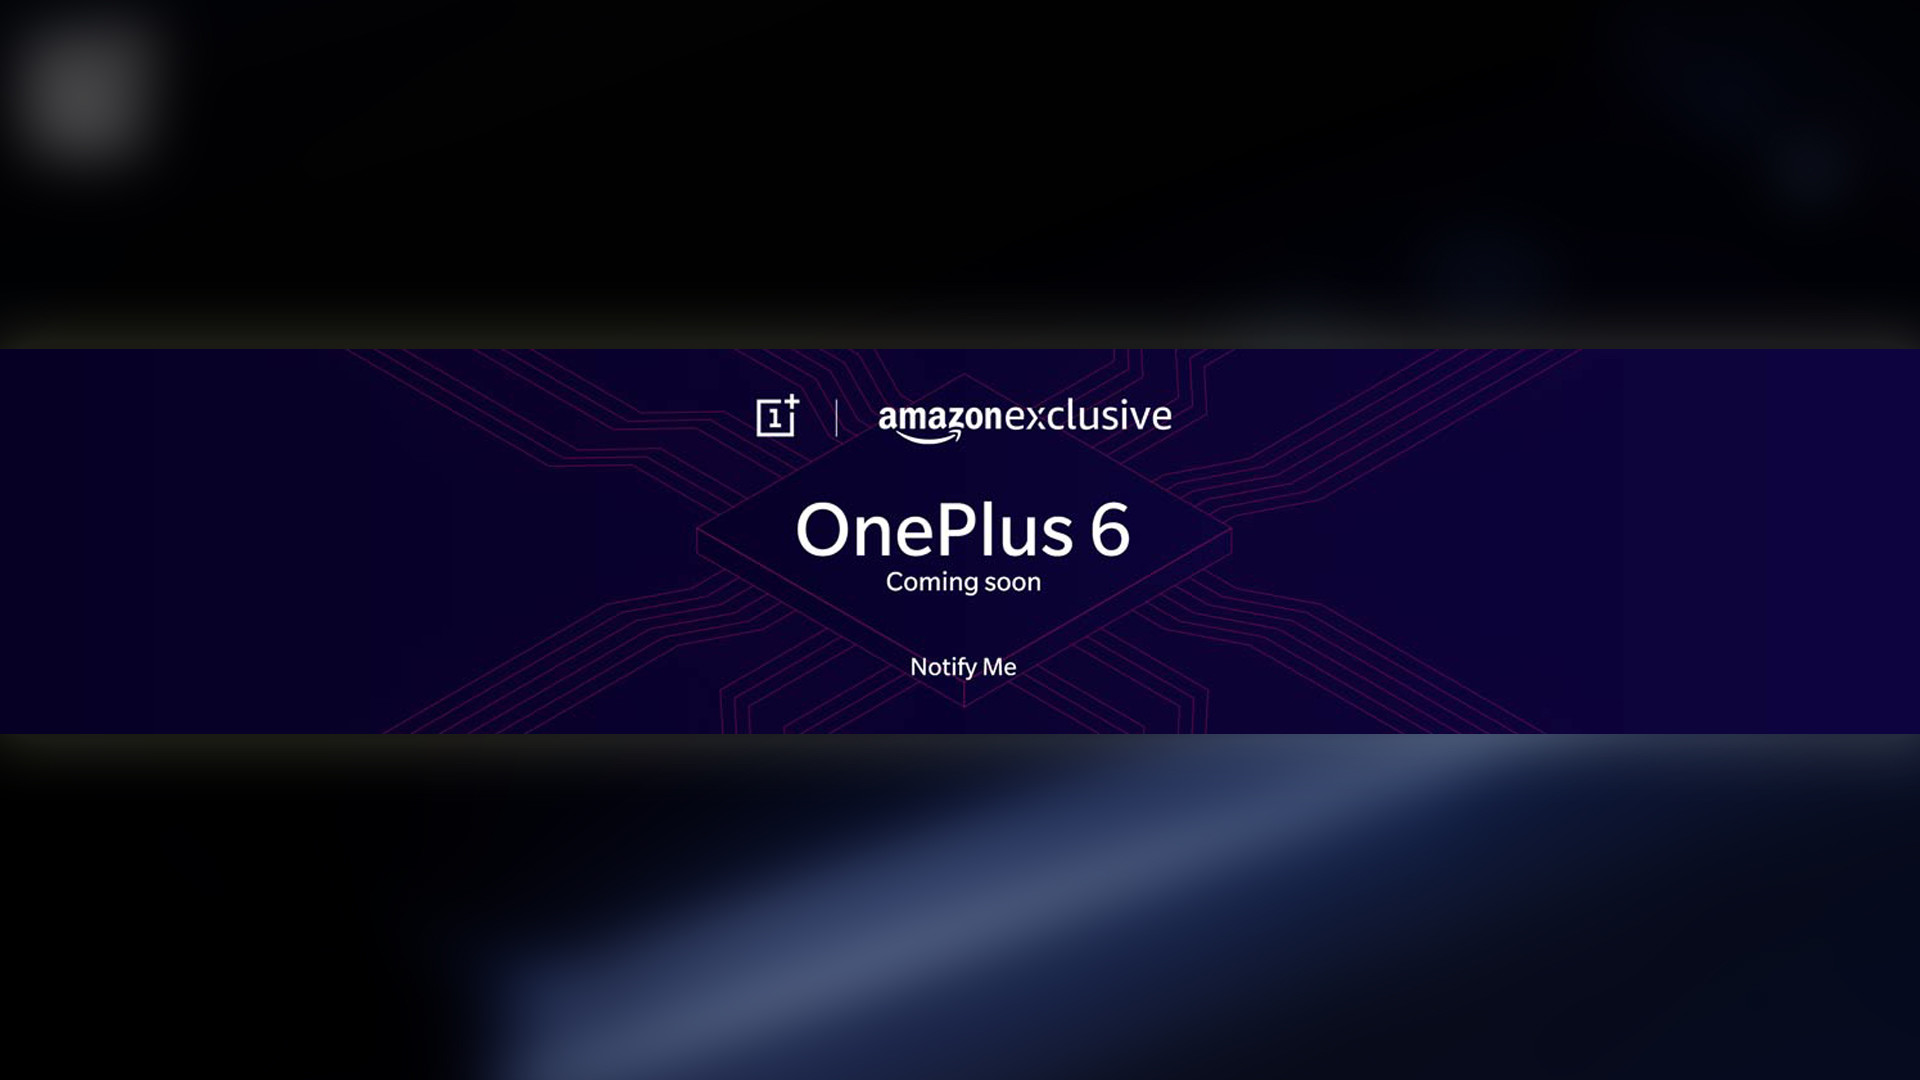 OnePlus 6 Ceramic Rear Panel Teased Immediately